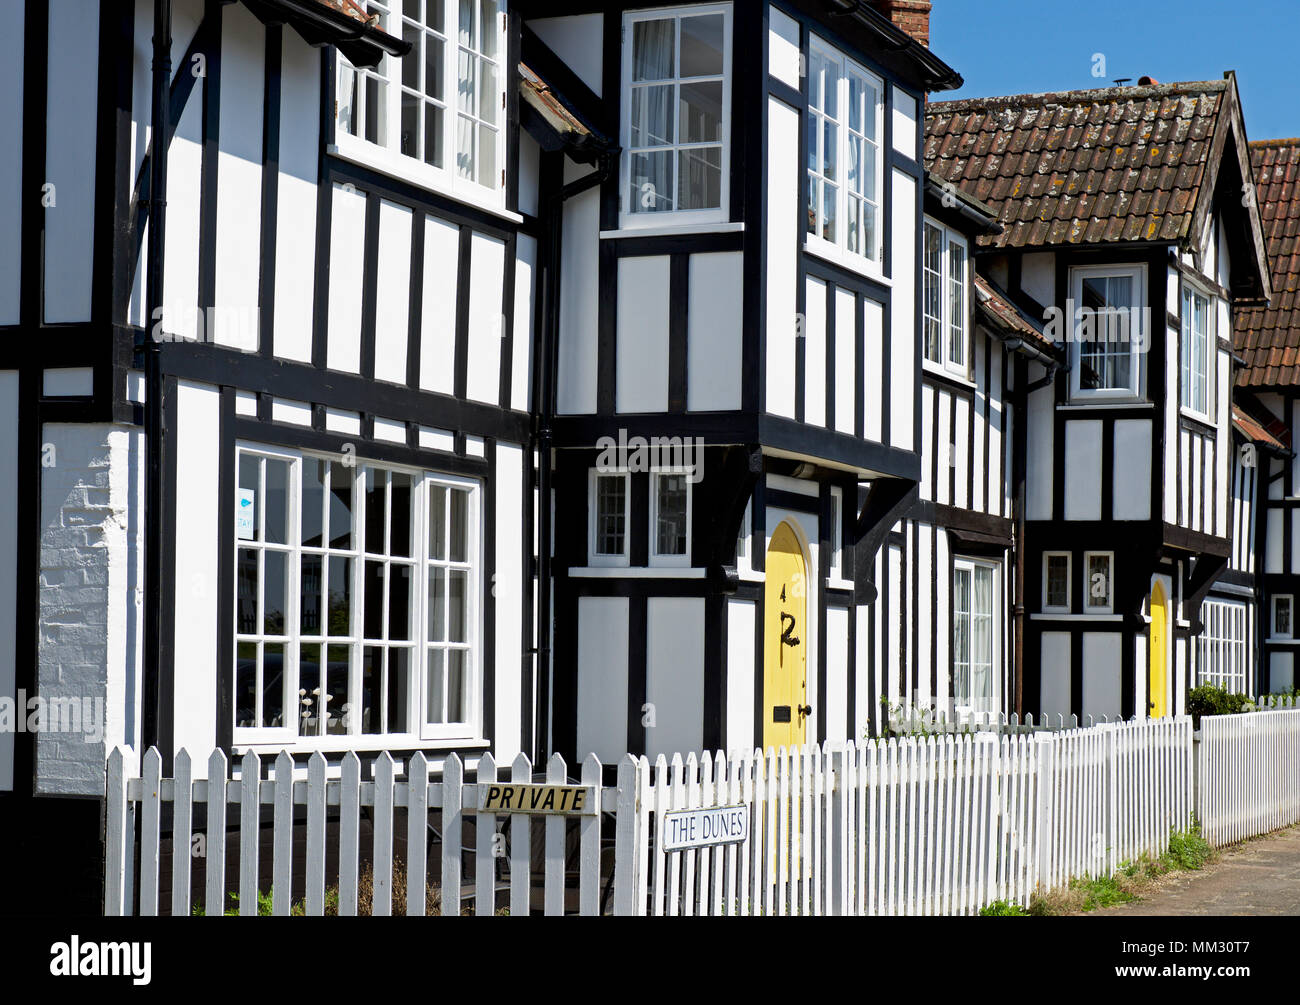 Houses in Thorpeness, Suffolk, England UK - Stock Image